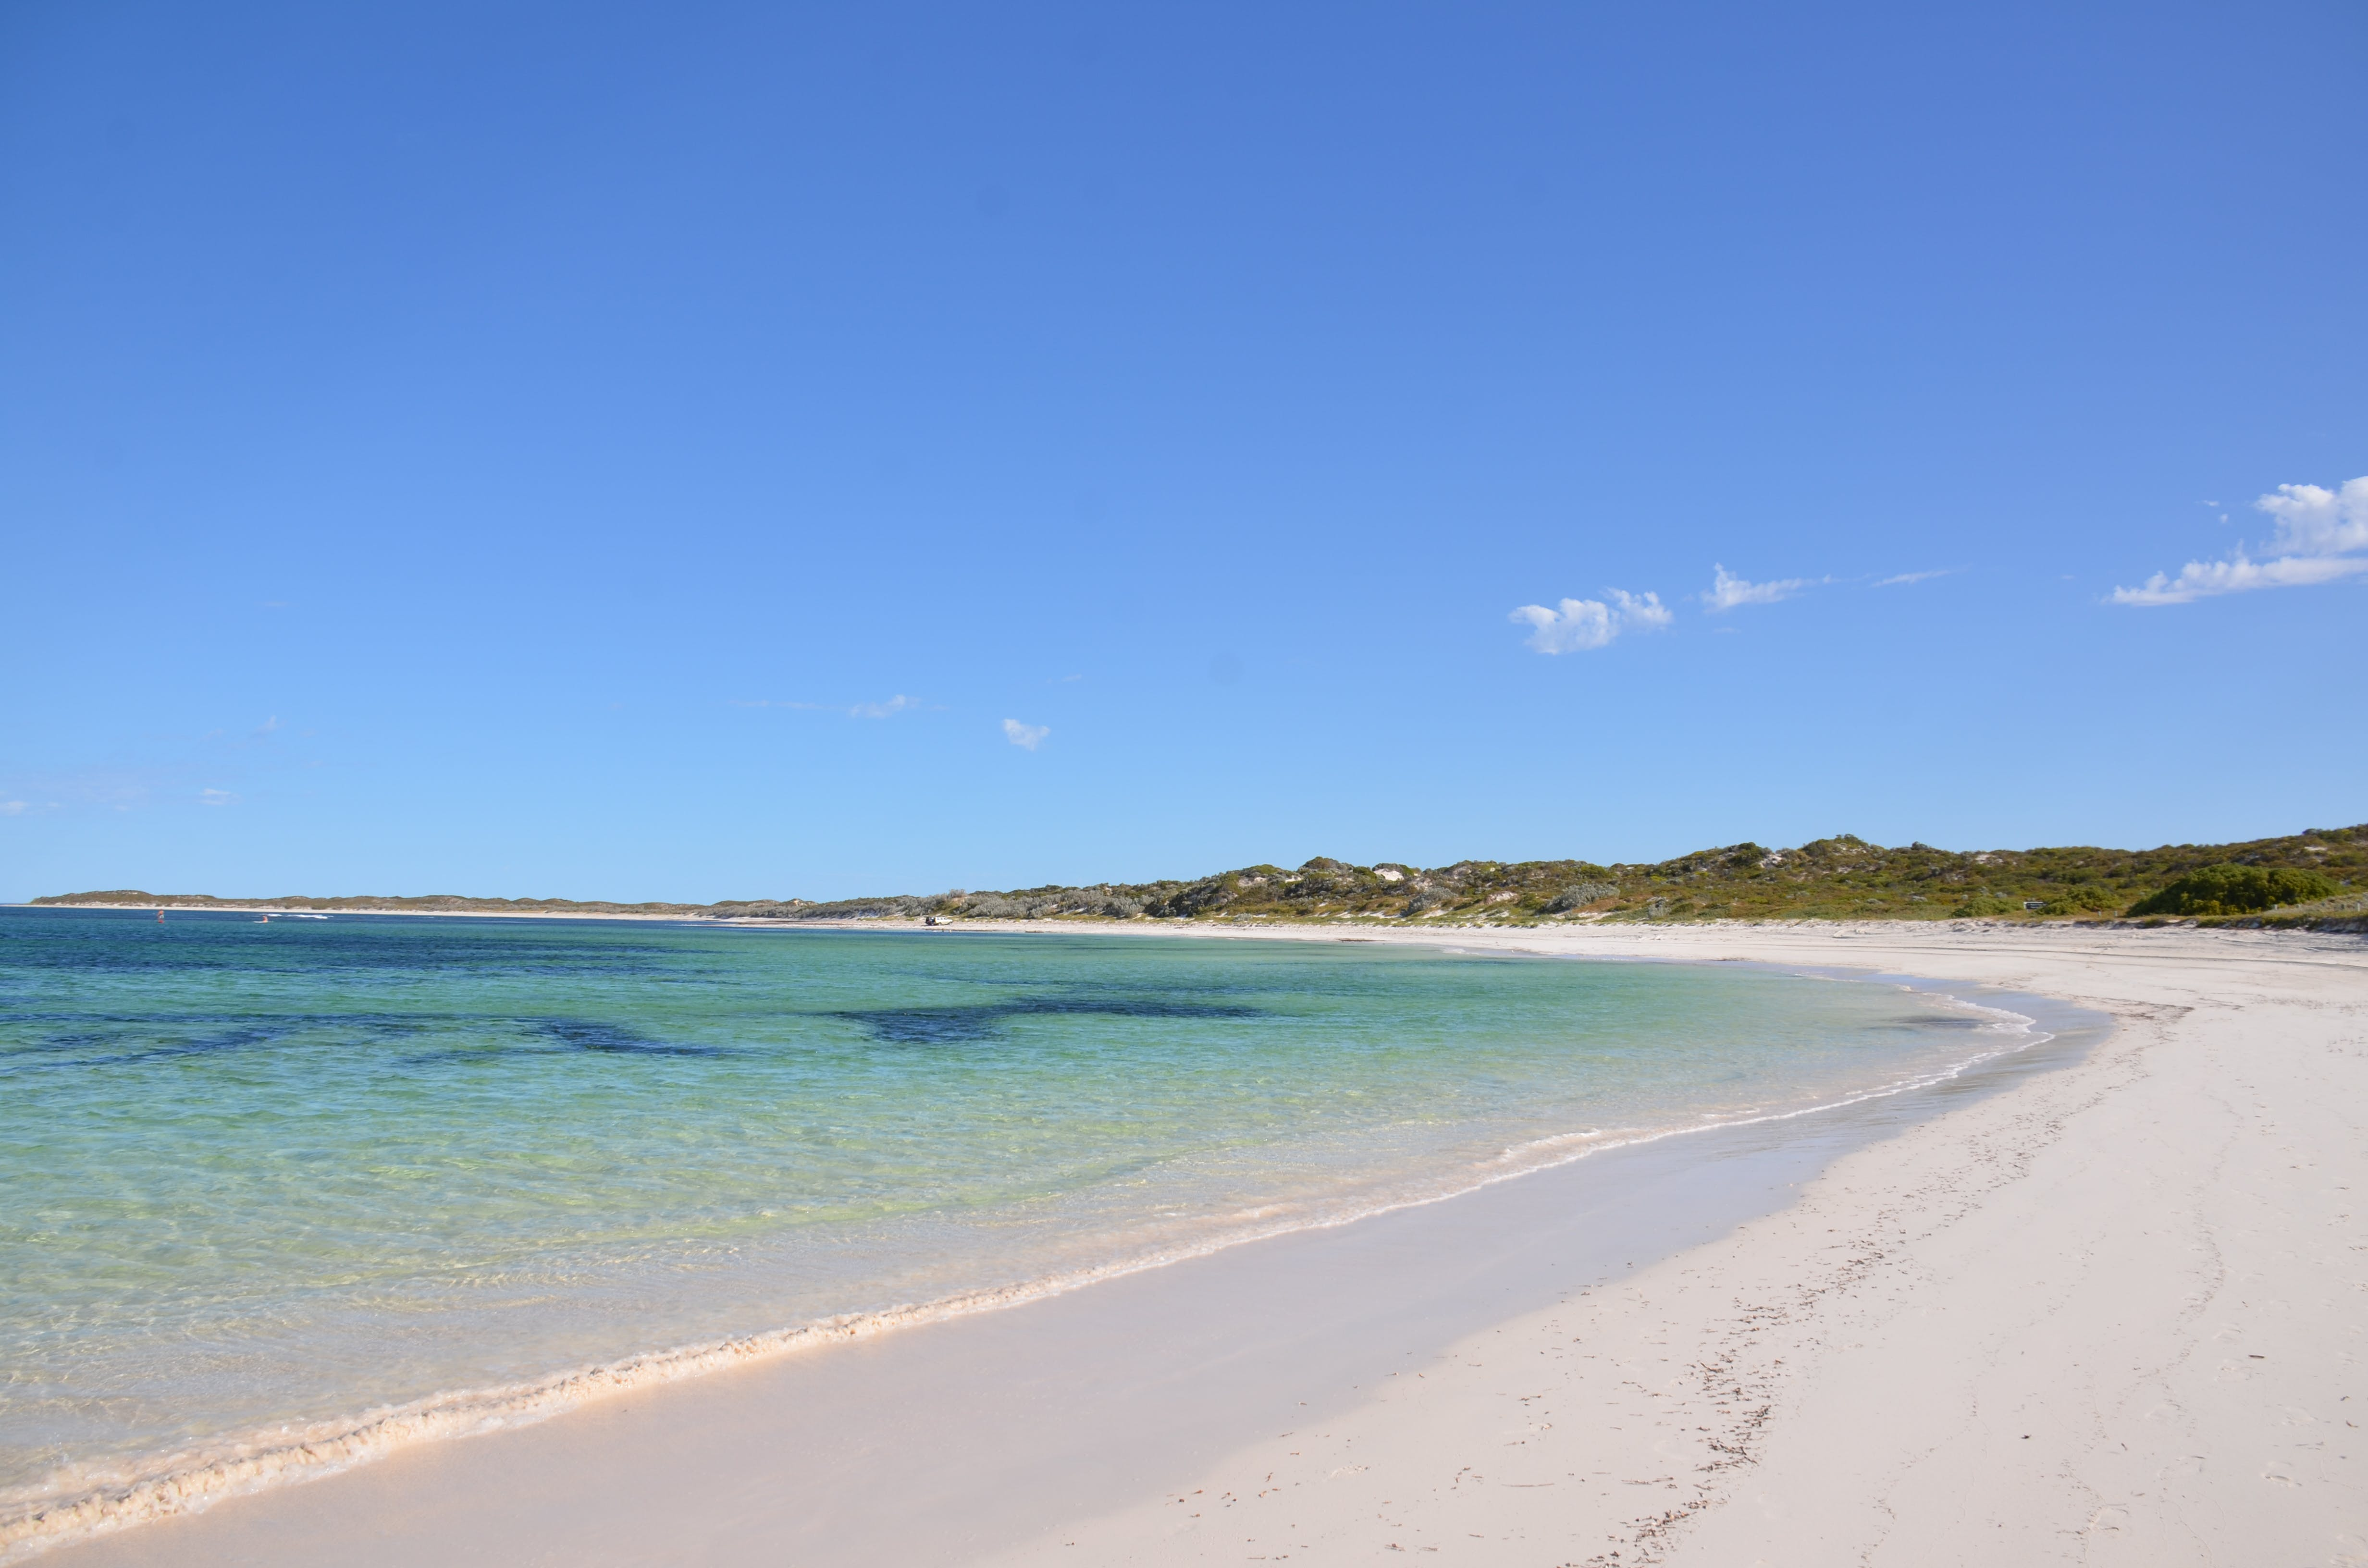 Free stock photo of hang over bay western australia, wide sweep of sandy beach